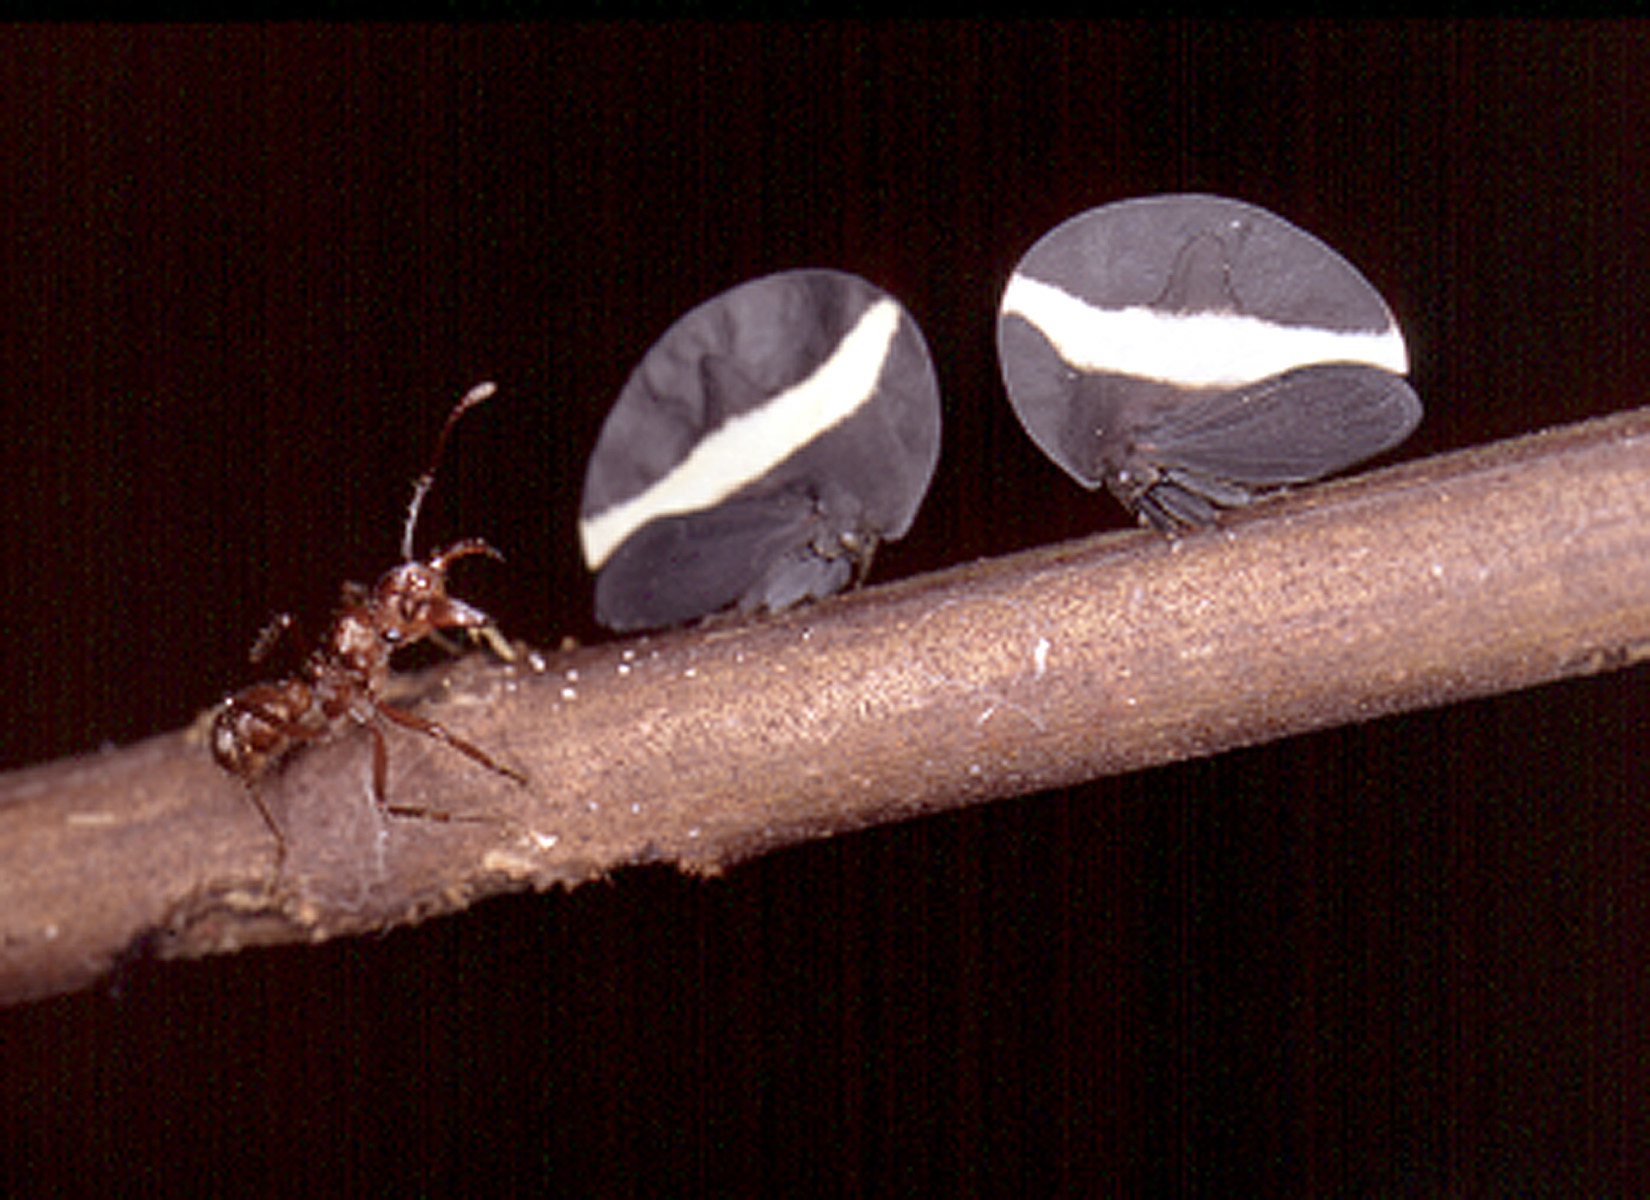 Some ant species indirectly feed on rainforest trees by eating nutrient-rich honeydew excreted by sap-sucking insects such as the two treehoppers shown here sitting on a twig.